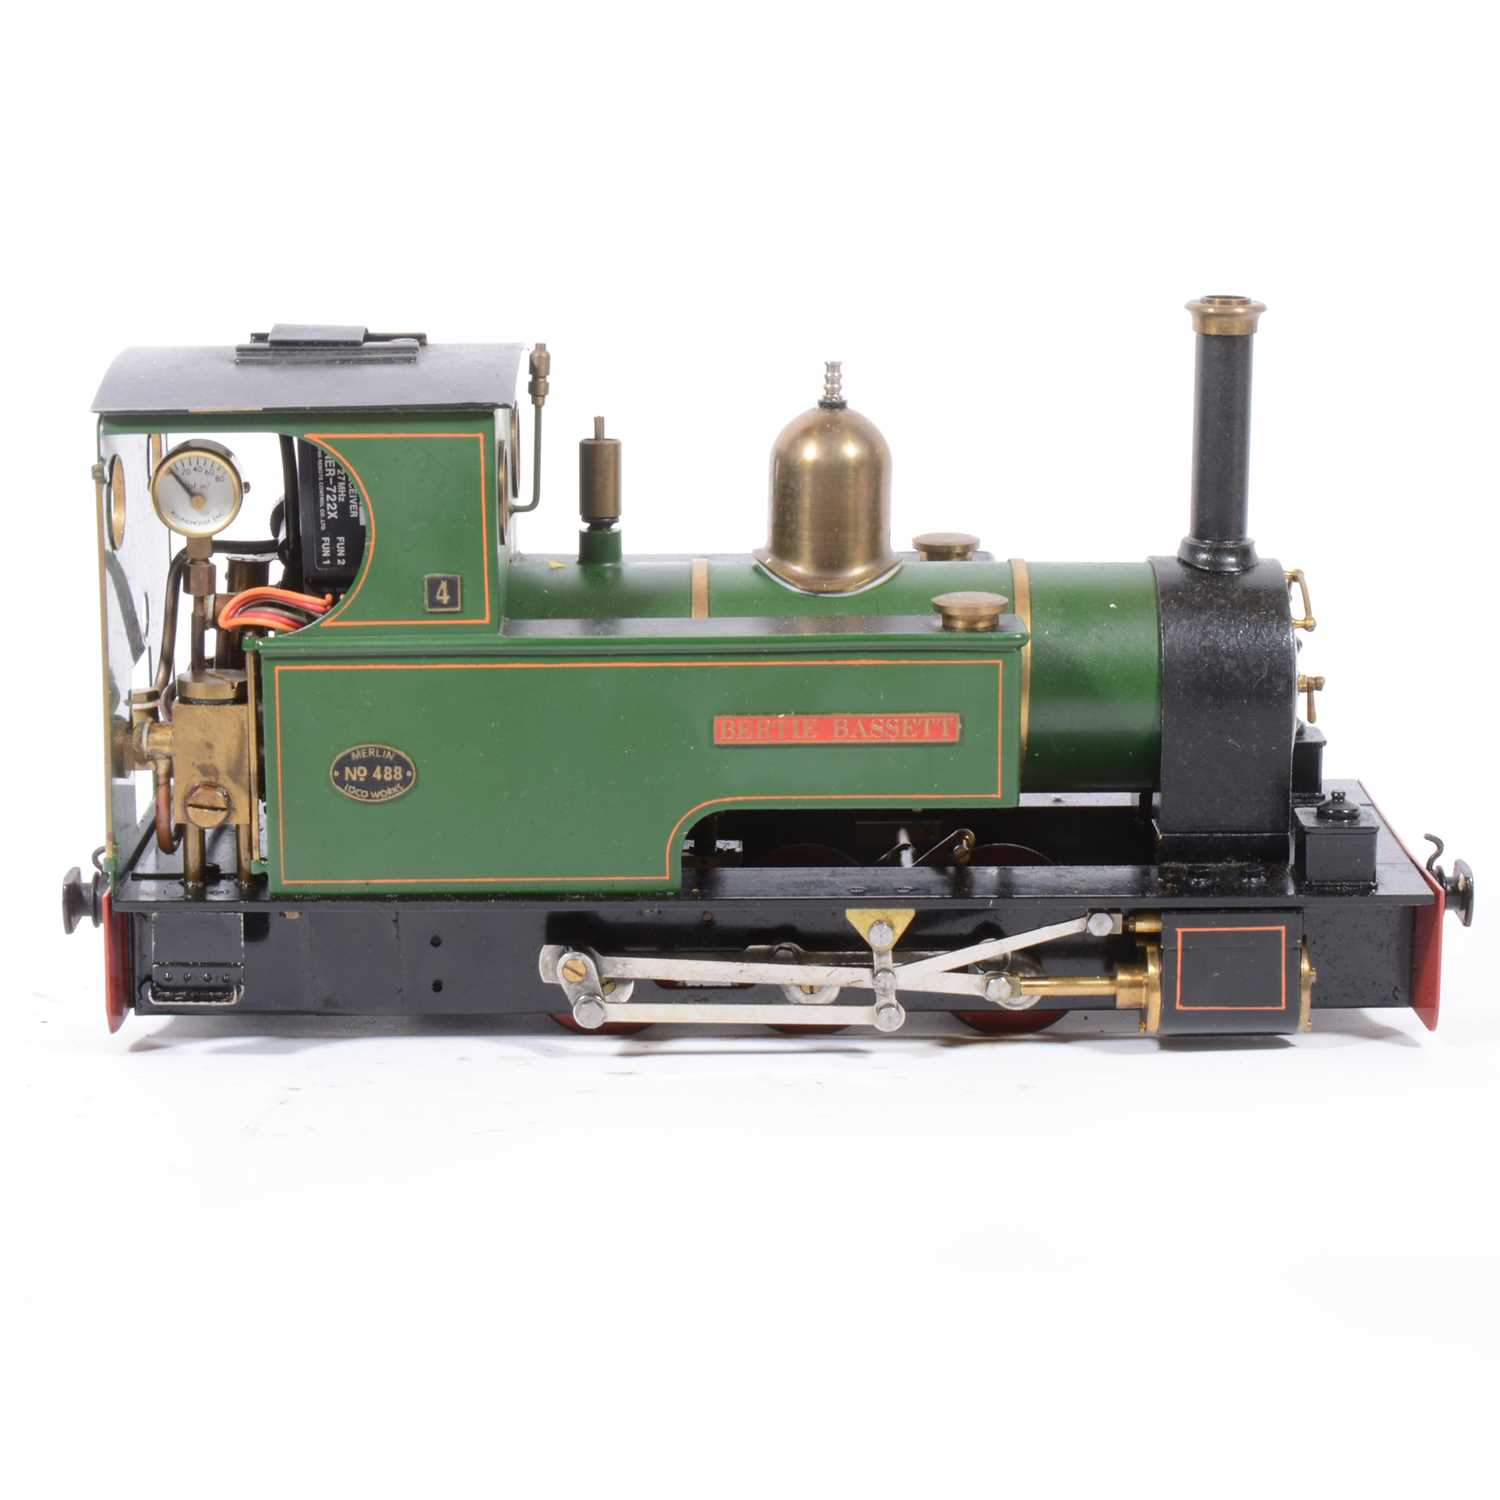 Lot 37-Merlin Loco Works live steam, gauge 1 / G scale, 45mm locomotive, Major 'Bertie Bassett' 0-6-0 no.488, green, with RC